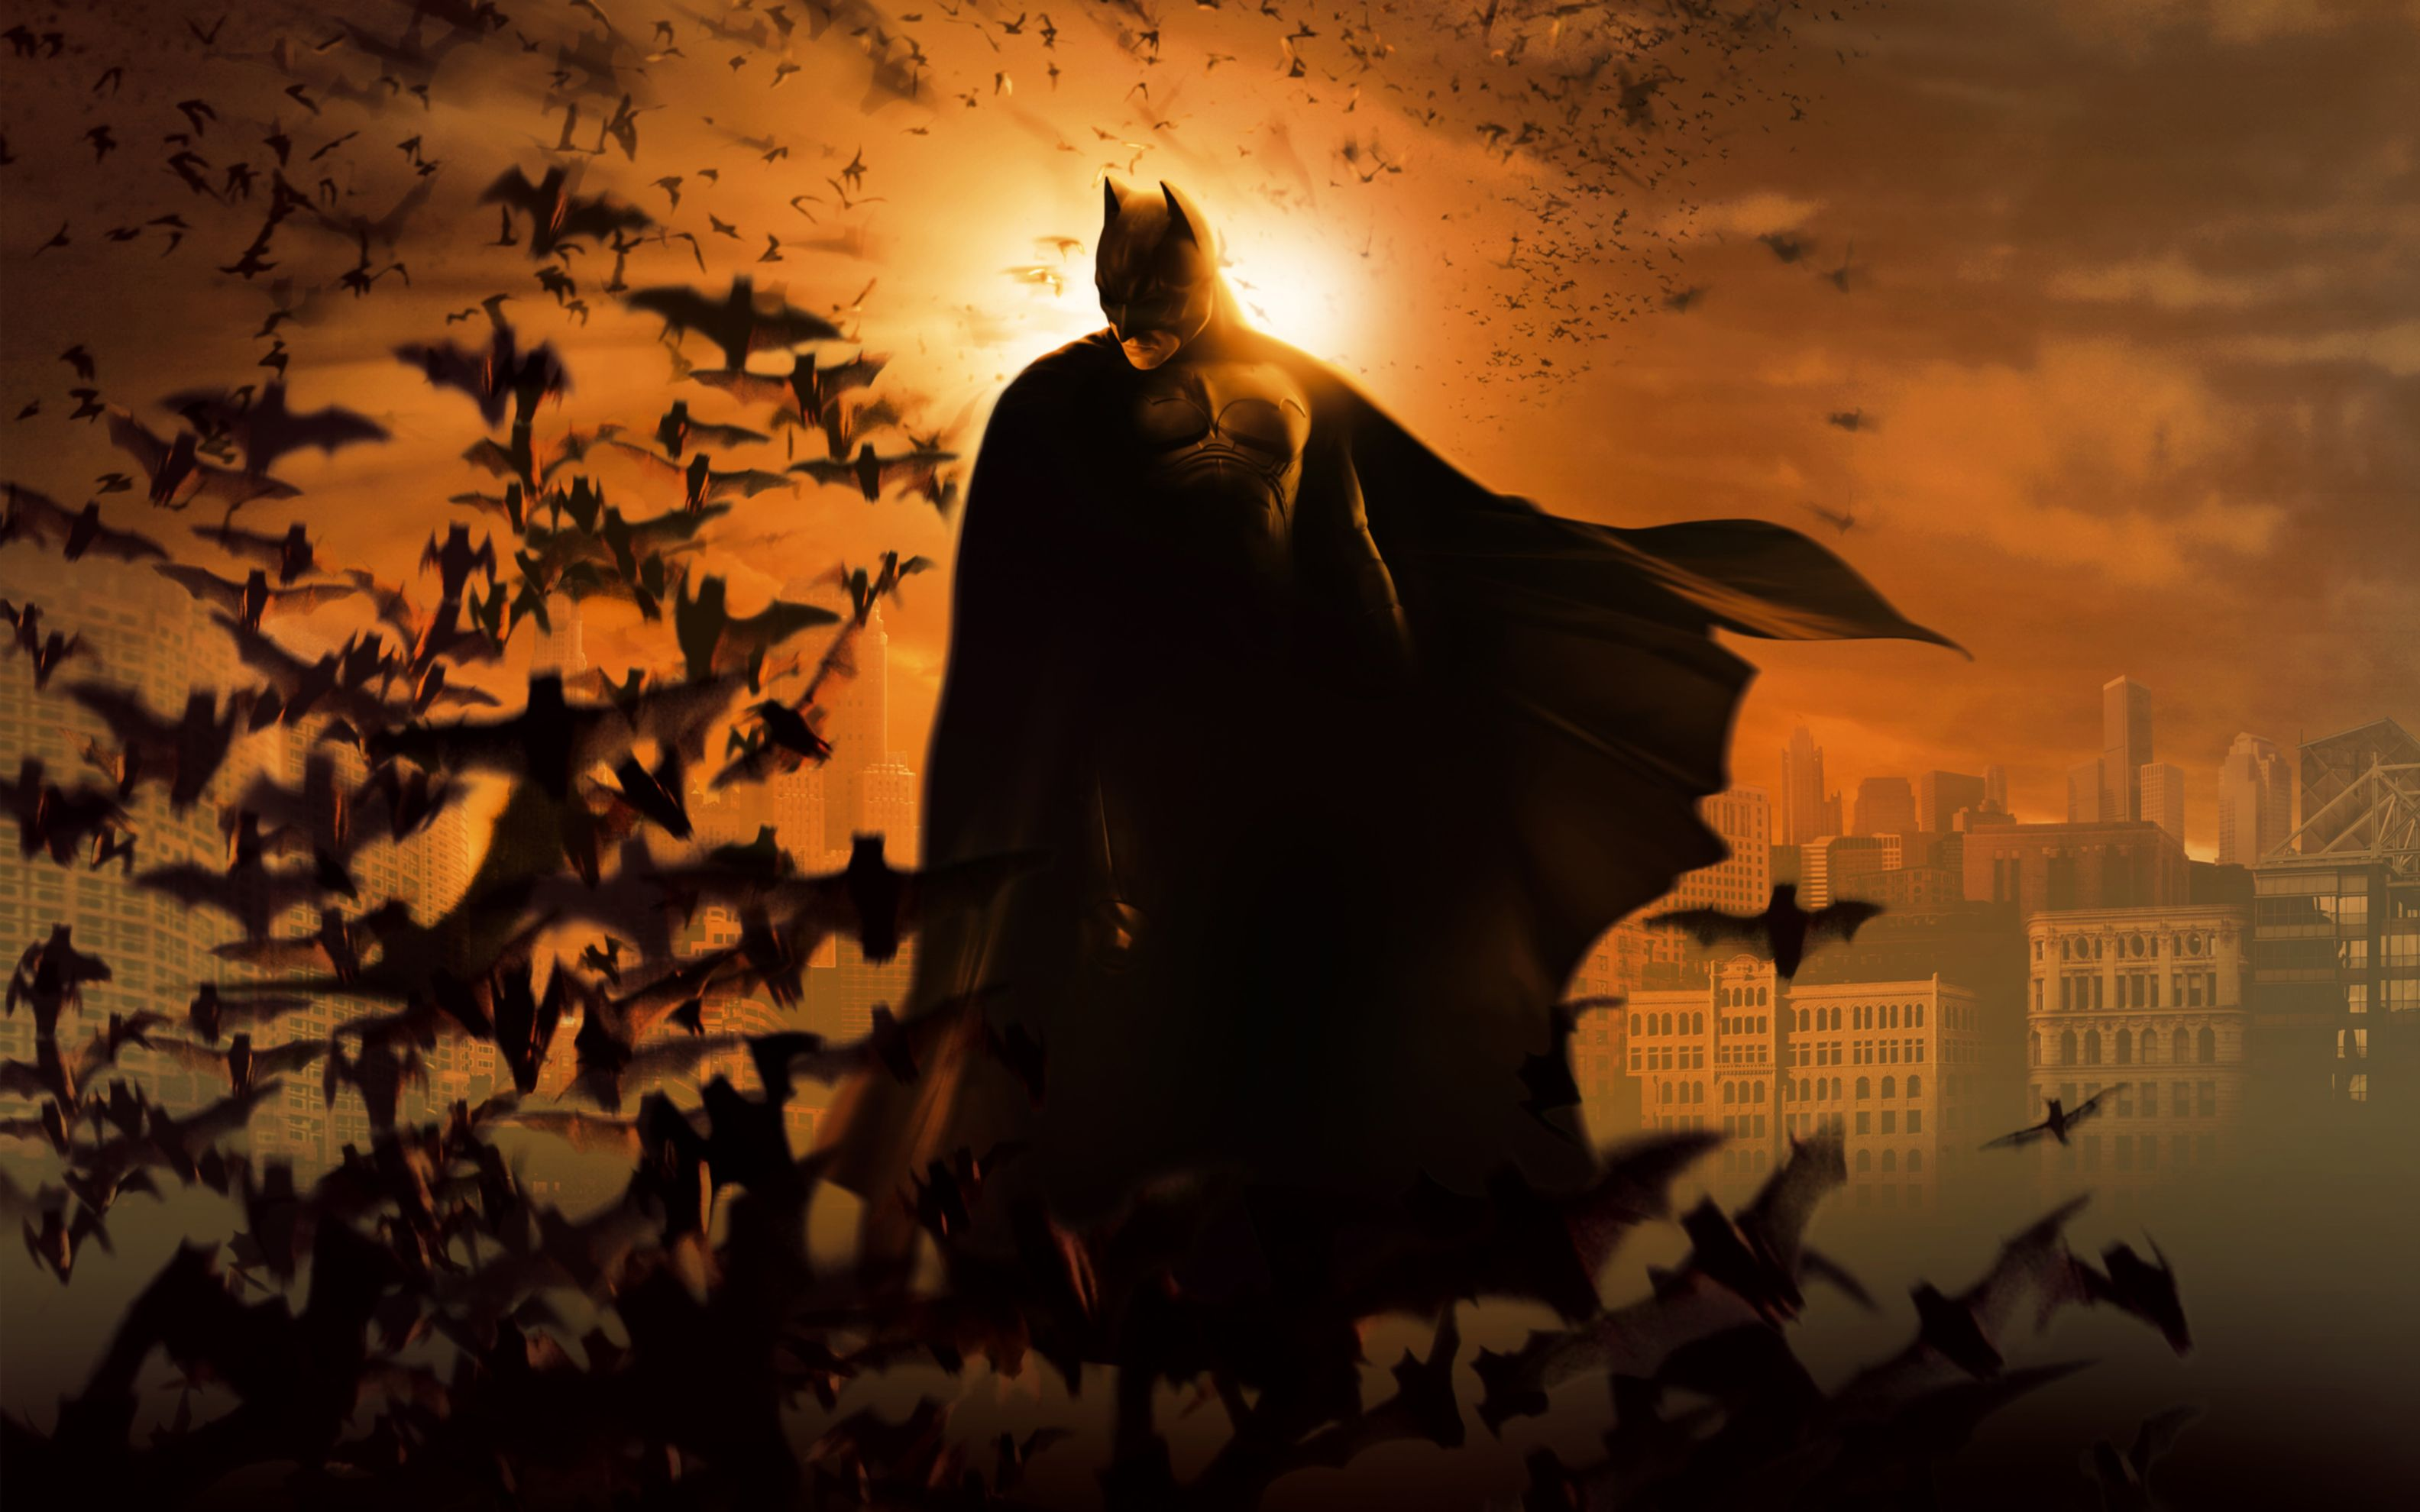 batman 3 the dark knight rises wide wallpaper: desktop hd wallpaper